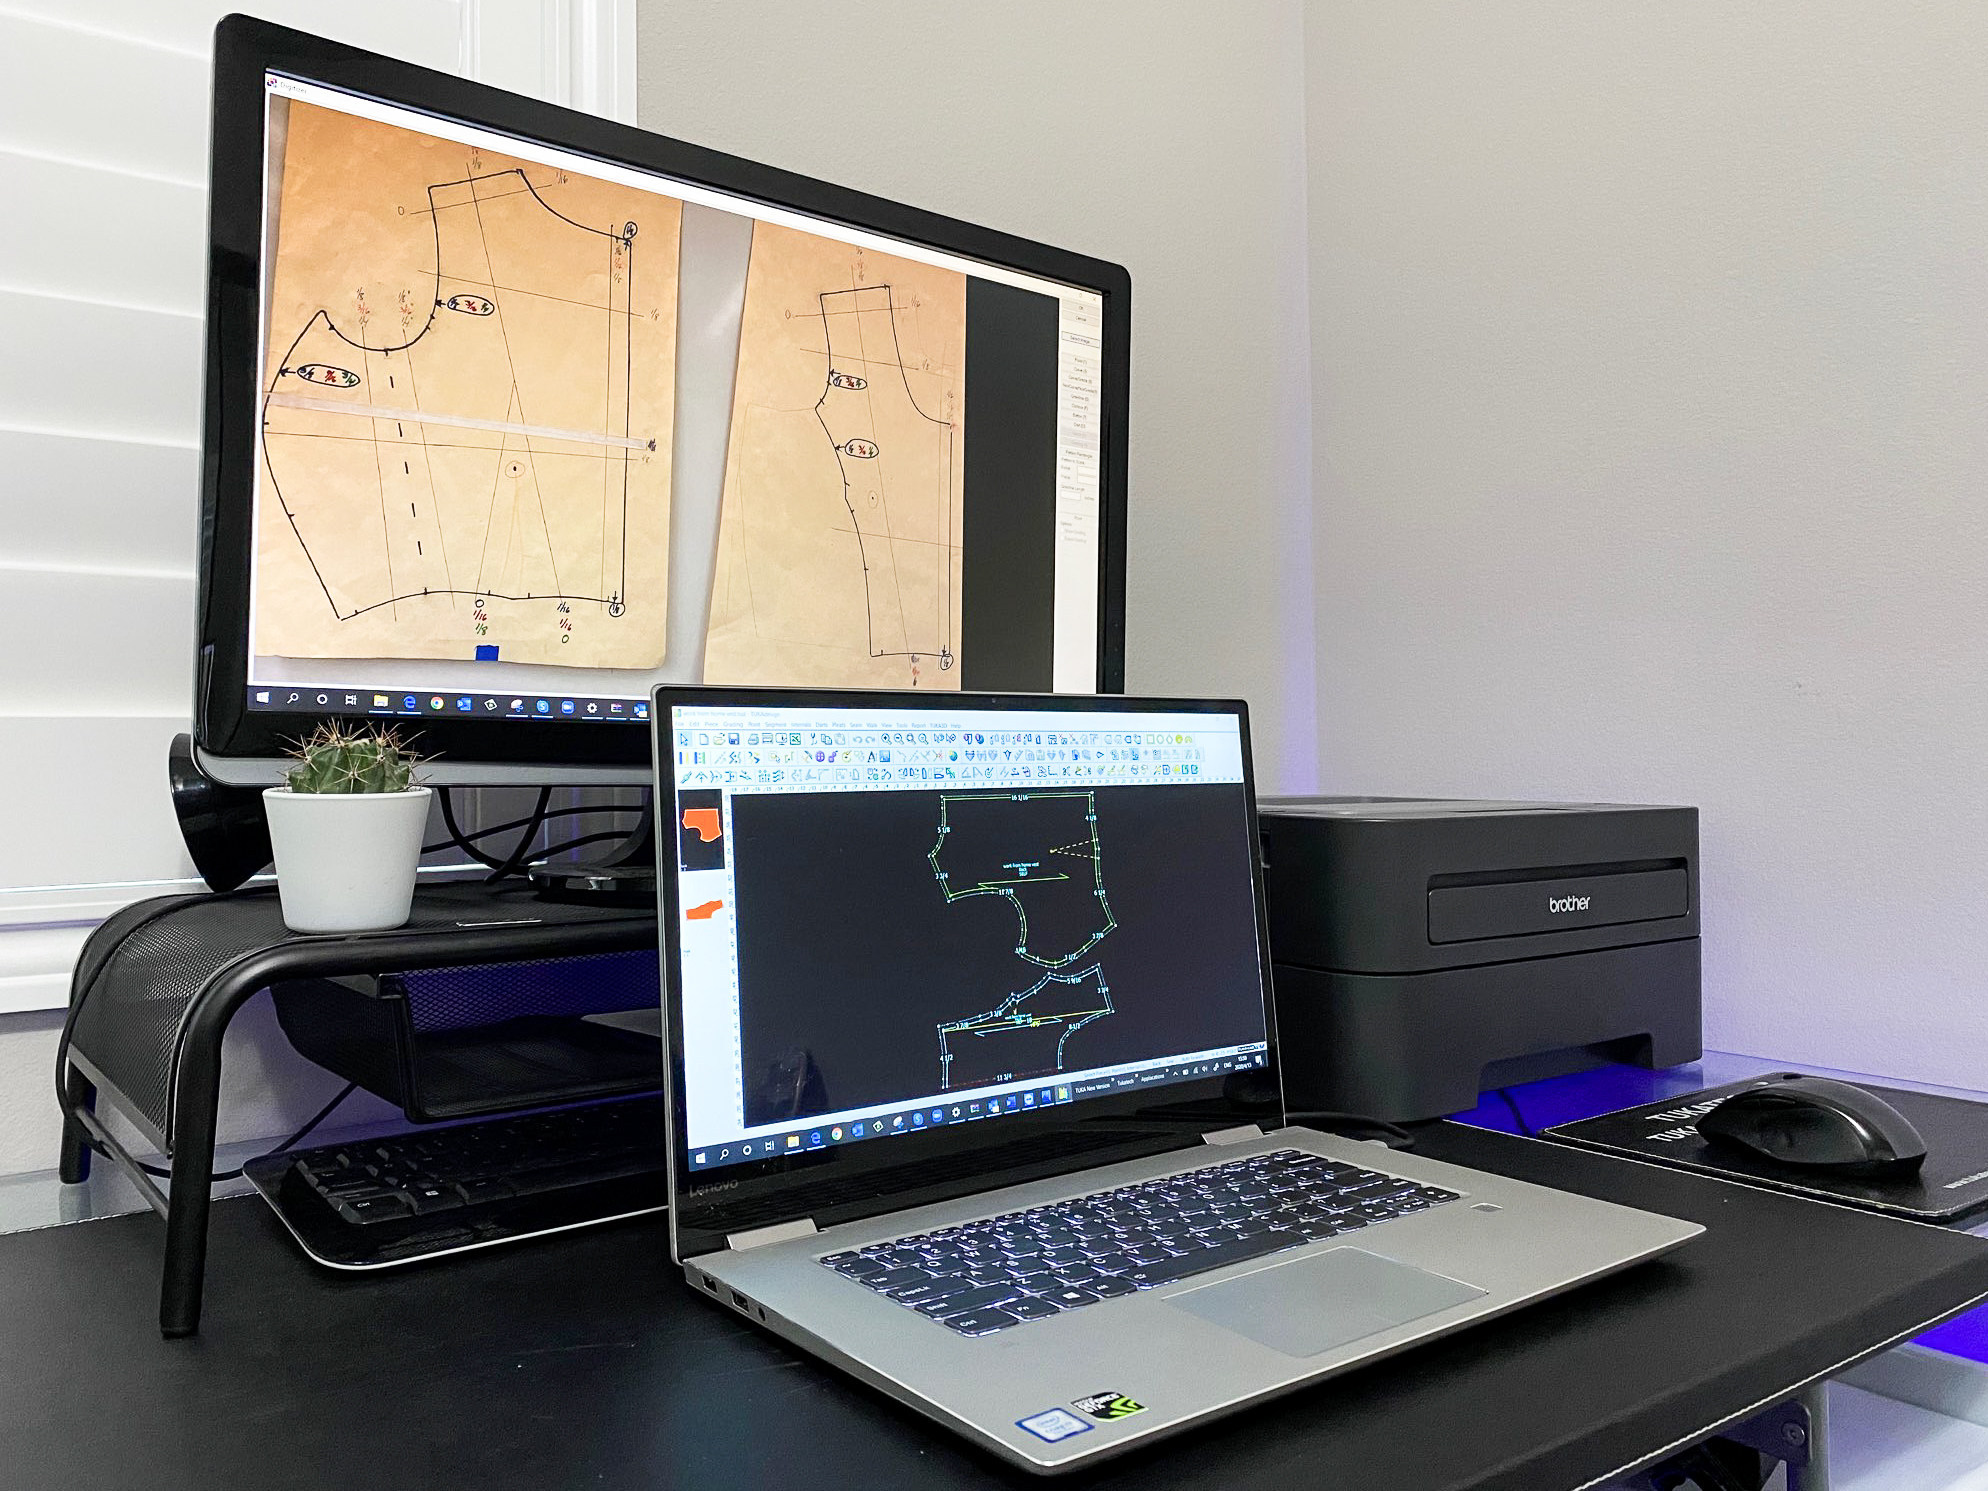 Tukatech Inc. has released the industry's first home printing and plotting system, bringing advanced pattern making and grading to those working from home.